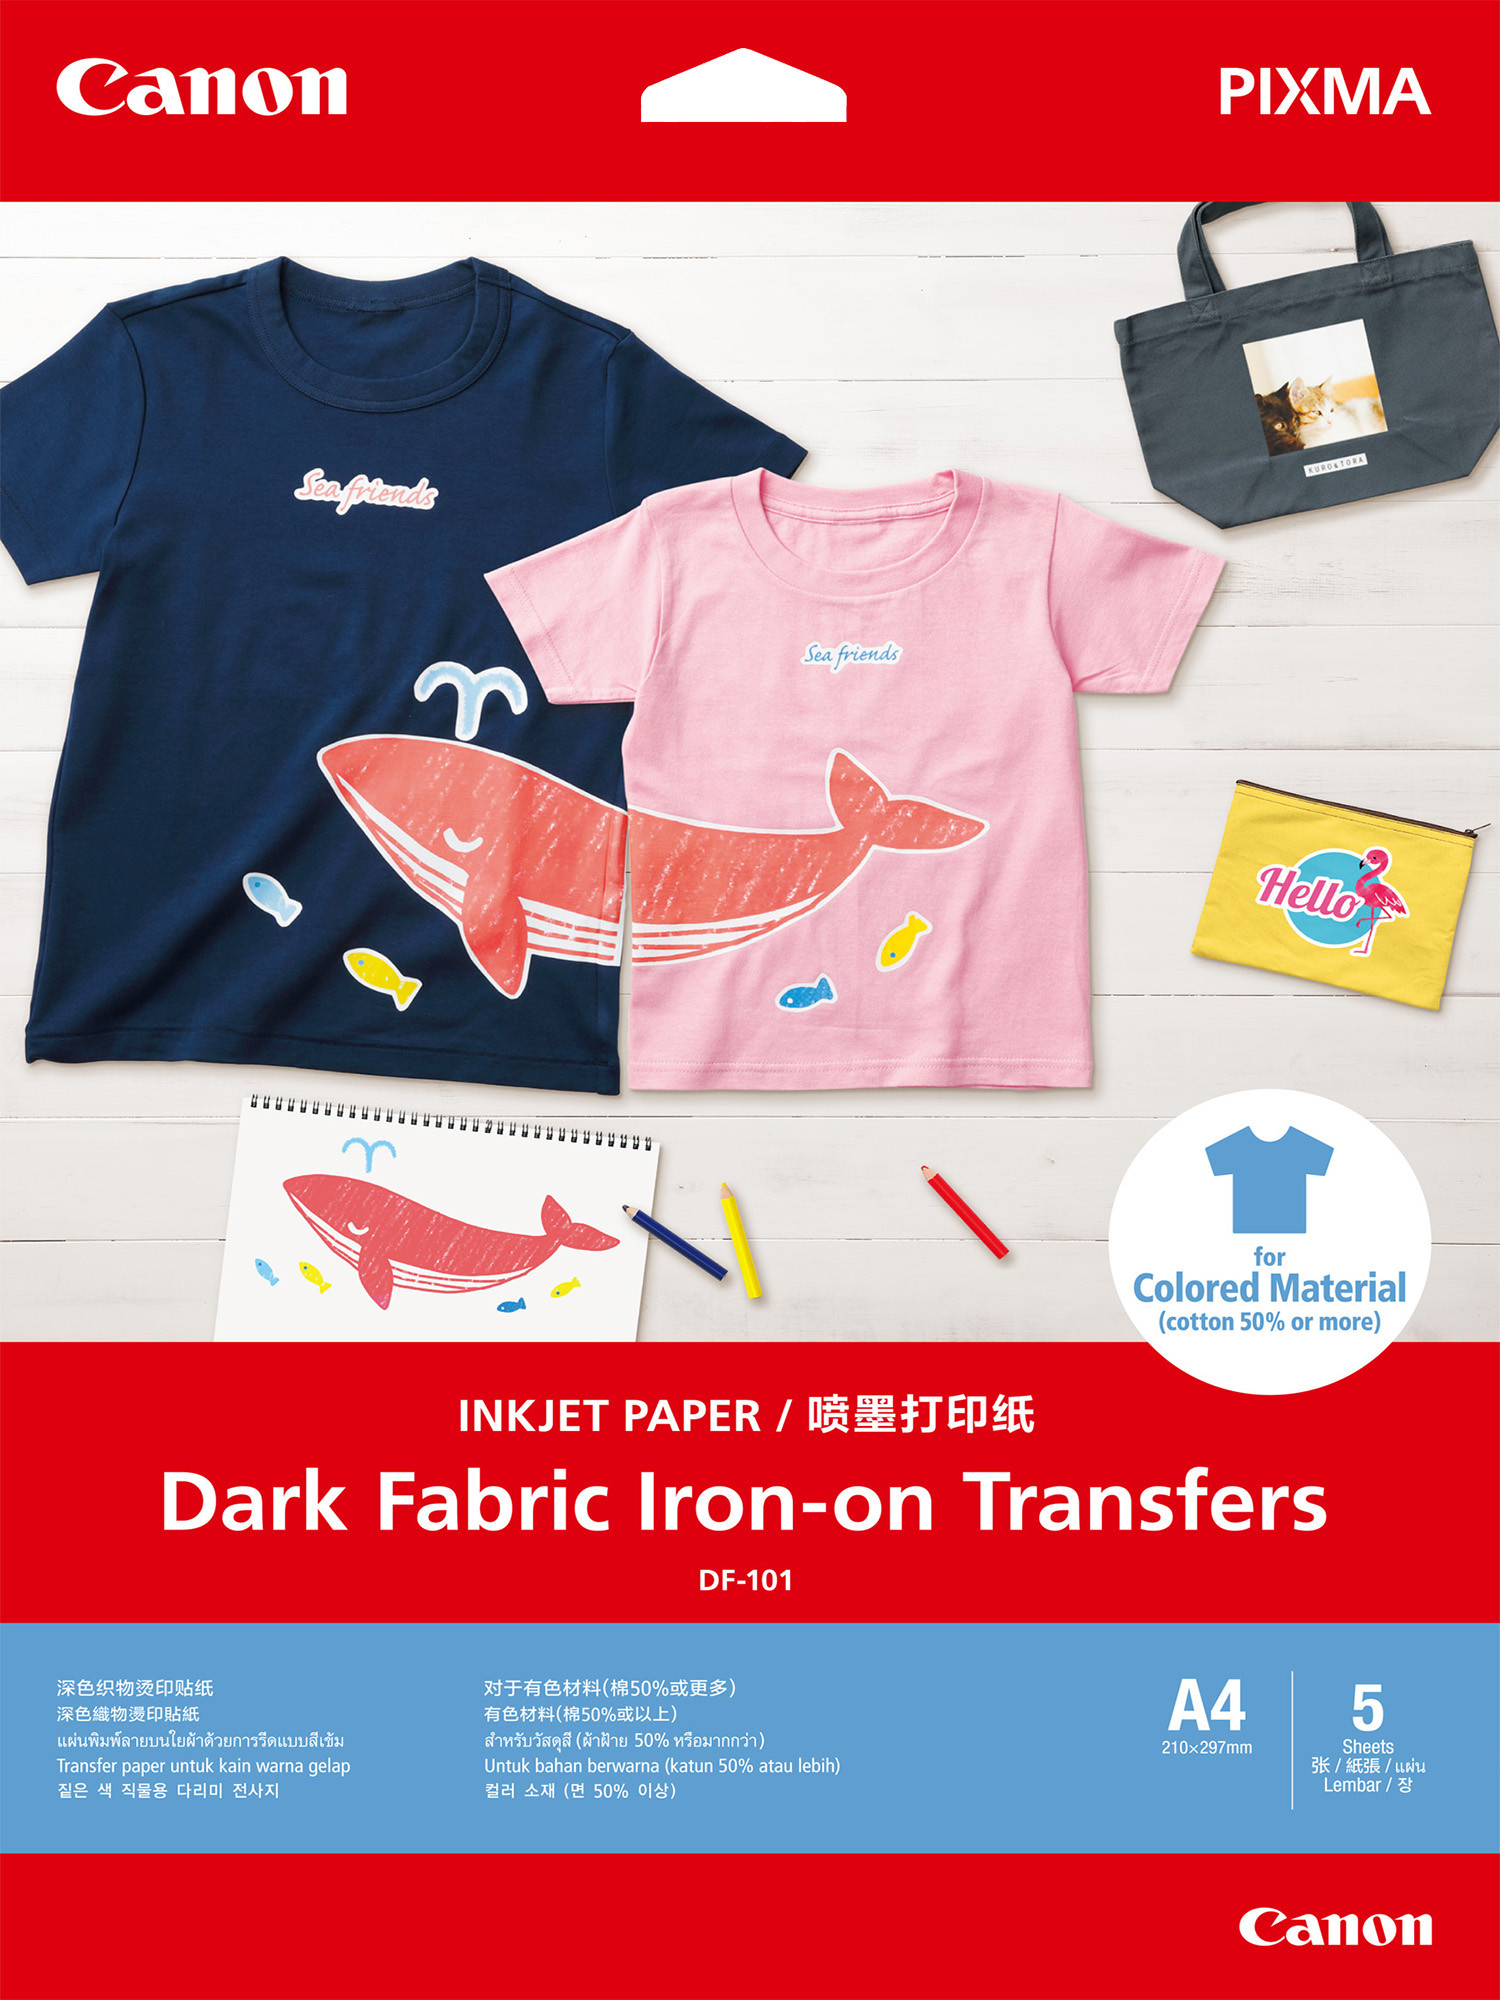 Canon DF-101 A 4 Dark Fabric Iron-on Transfers 5 Sheets papīrs